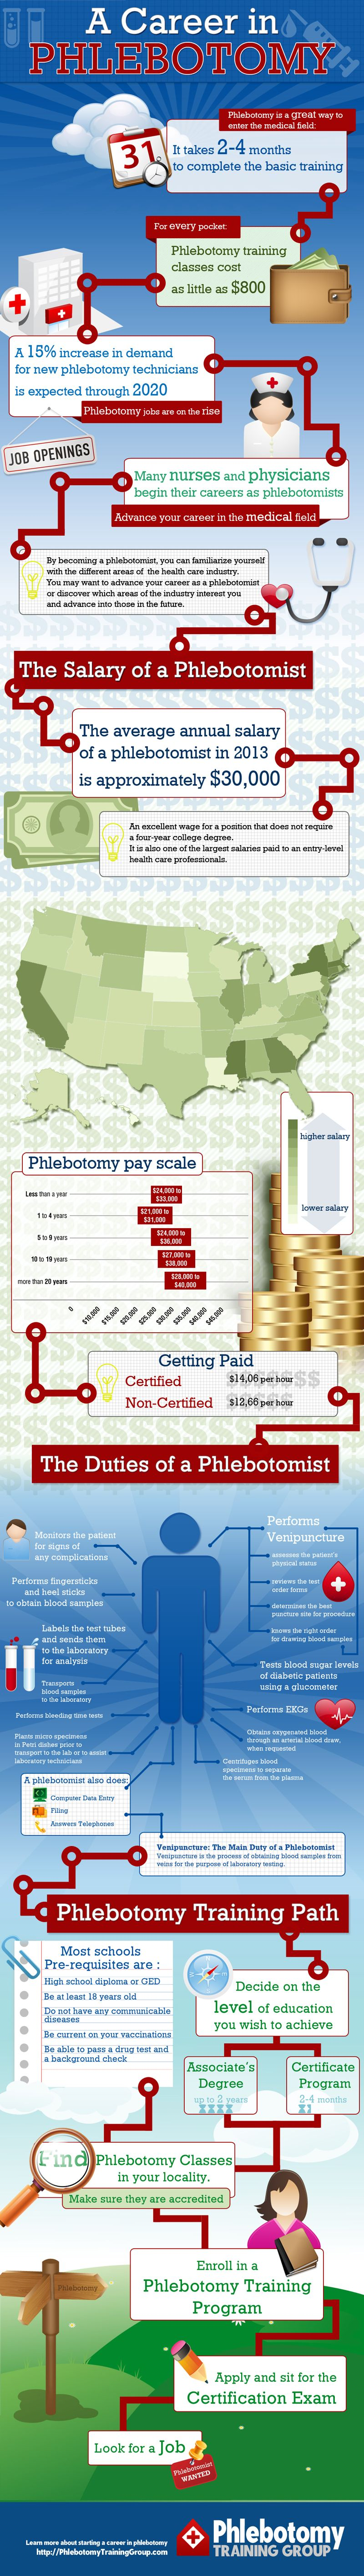 Infographic a career in phlebotomy infographics pinterest start preparing today with a phlebotomy study guide that includes phlebotomy practice test questions raise your phlebotomy test score by mometrix xflitez Image collections